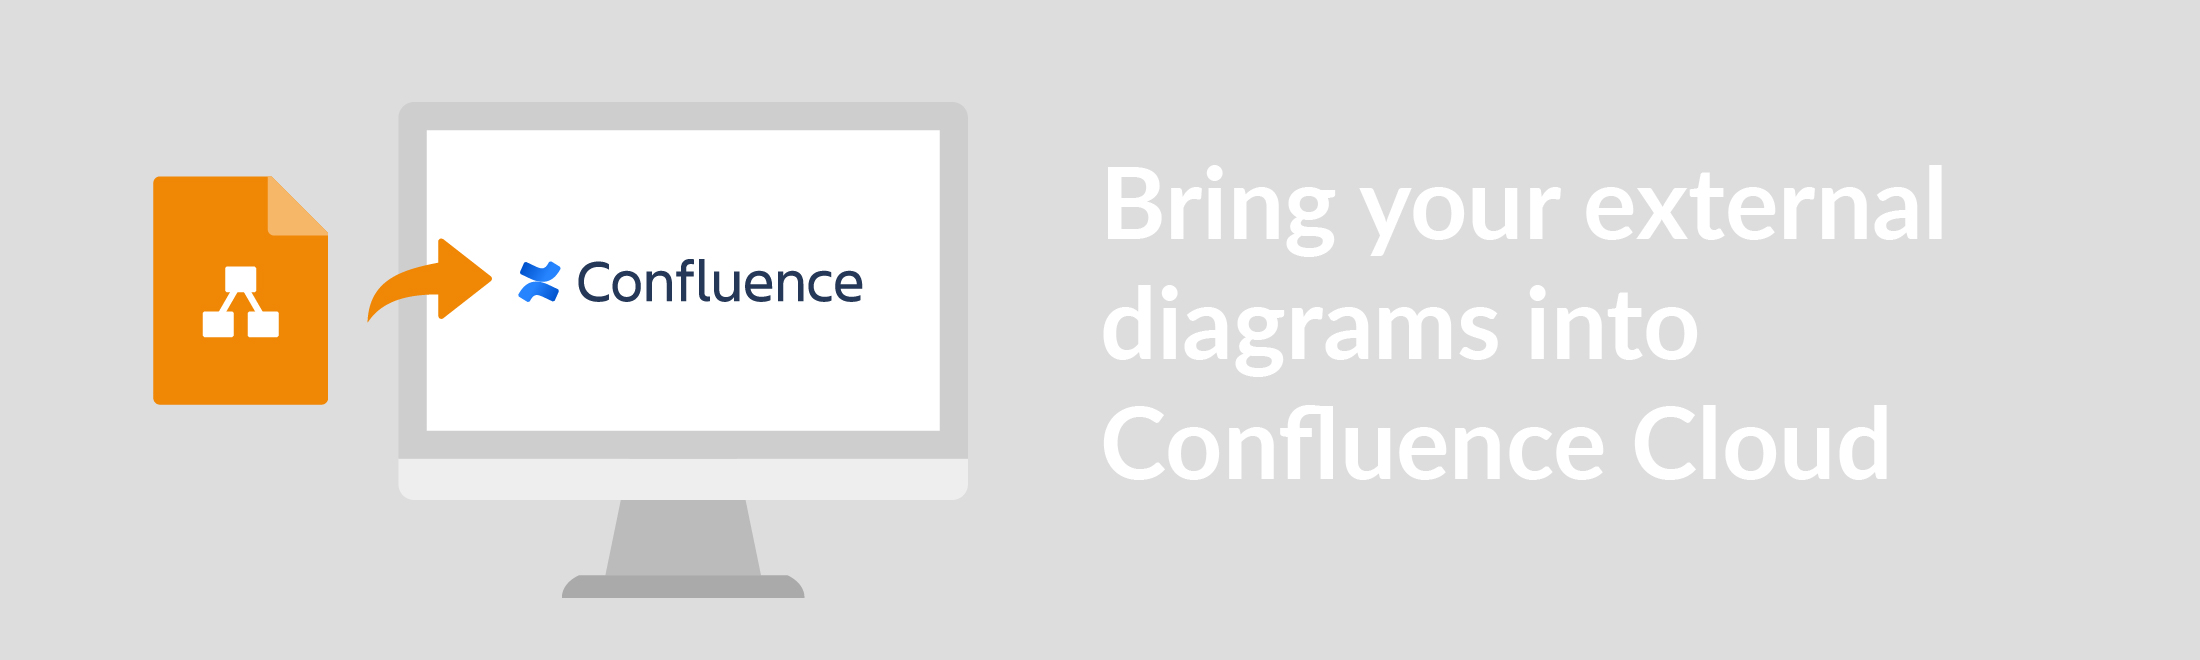 Bring your external diagrams into Confluence Cloud.